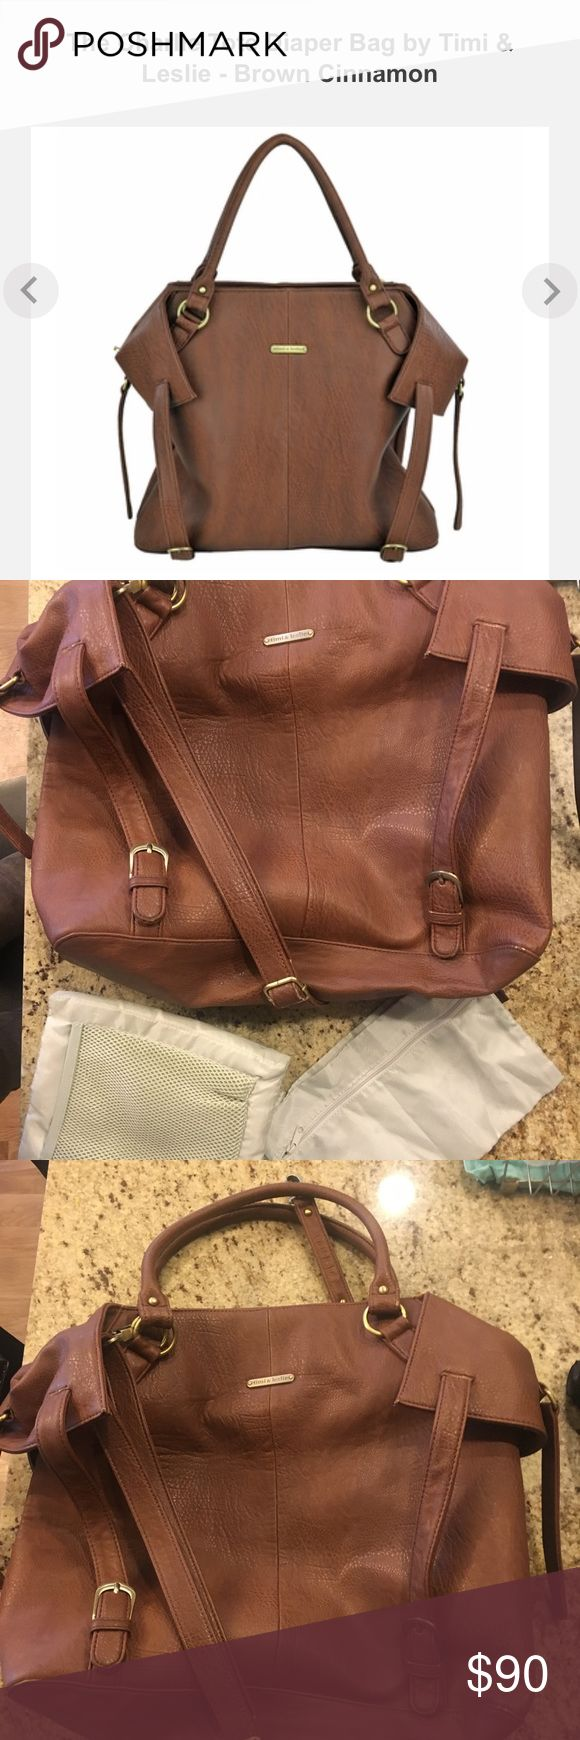 Timi and Leslie diaper bag SOLD OUT at stores!  Gorgeous and stylish diaper bag.  Comes with the mesh bag for soiled clothes and diaper changing pad.  See pic for specs. Good condition.  Few scuffs, shown in picture. Timi & Leslie Other